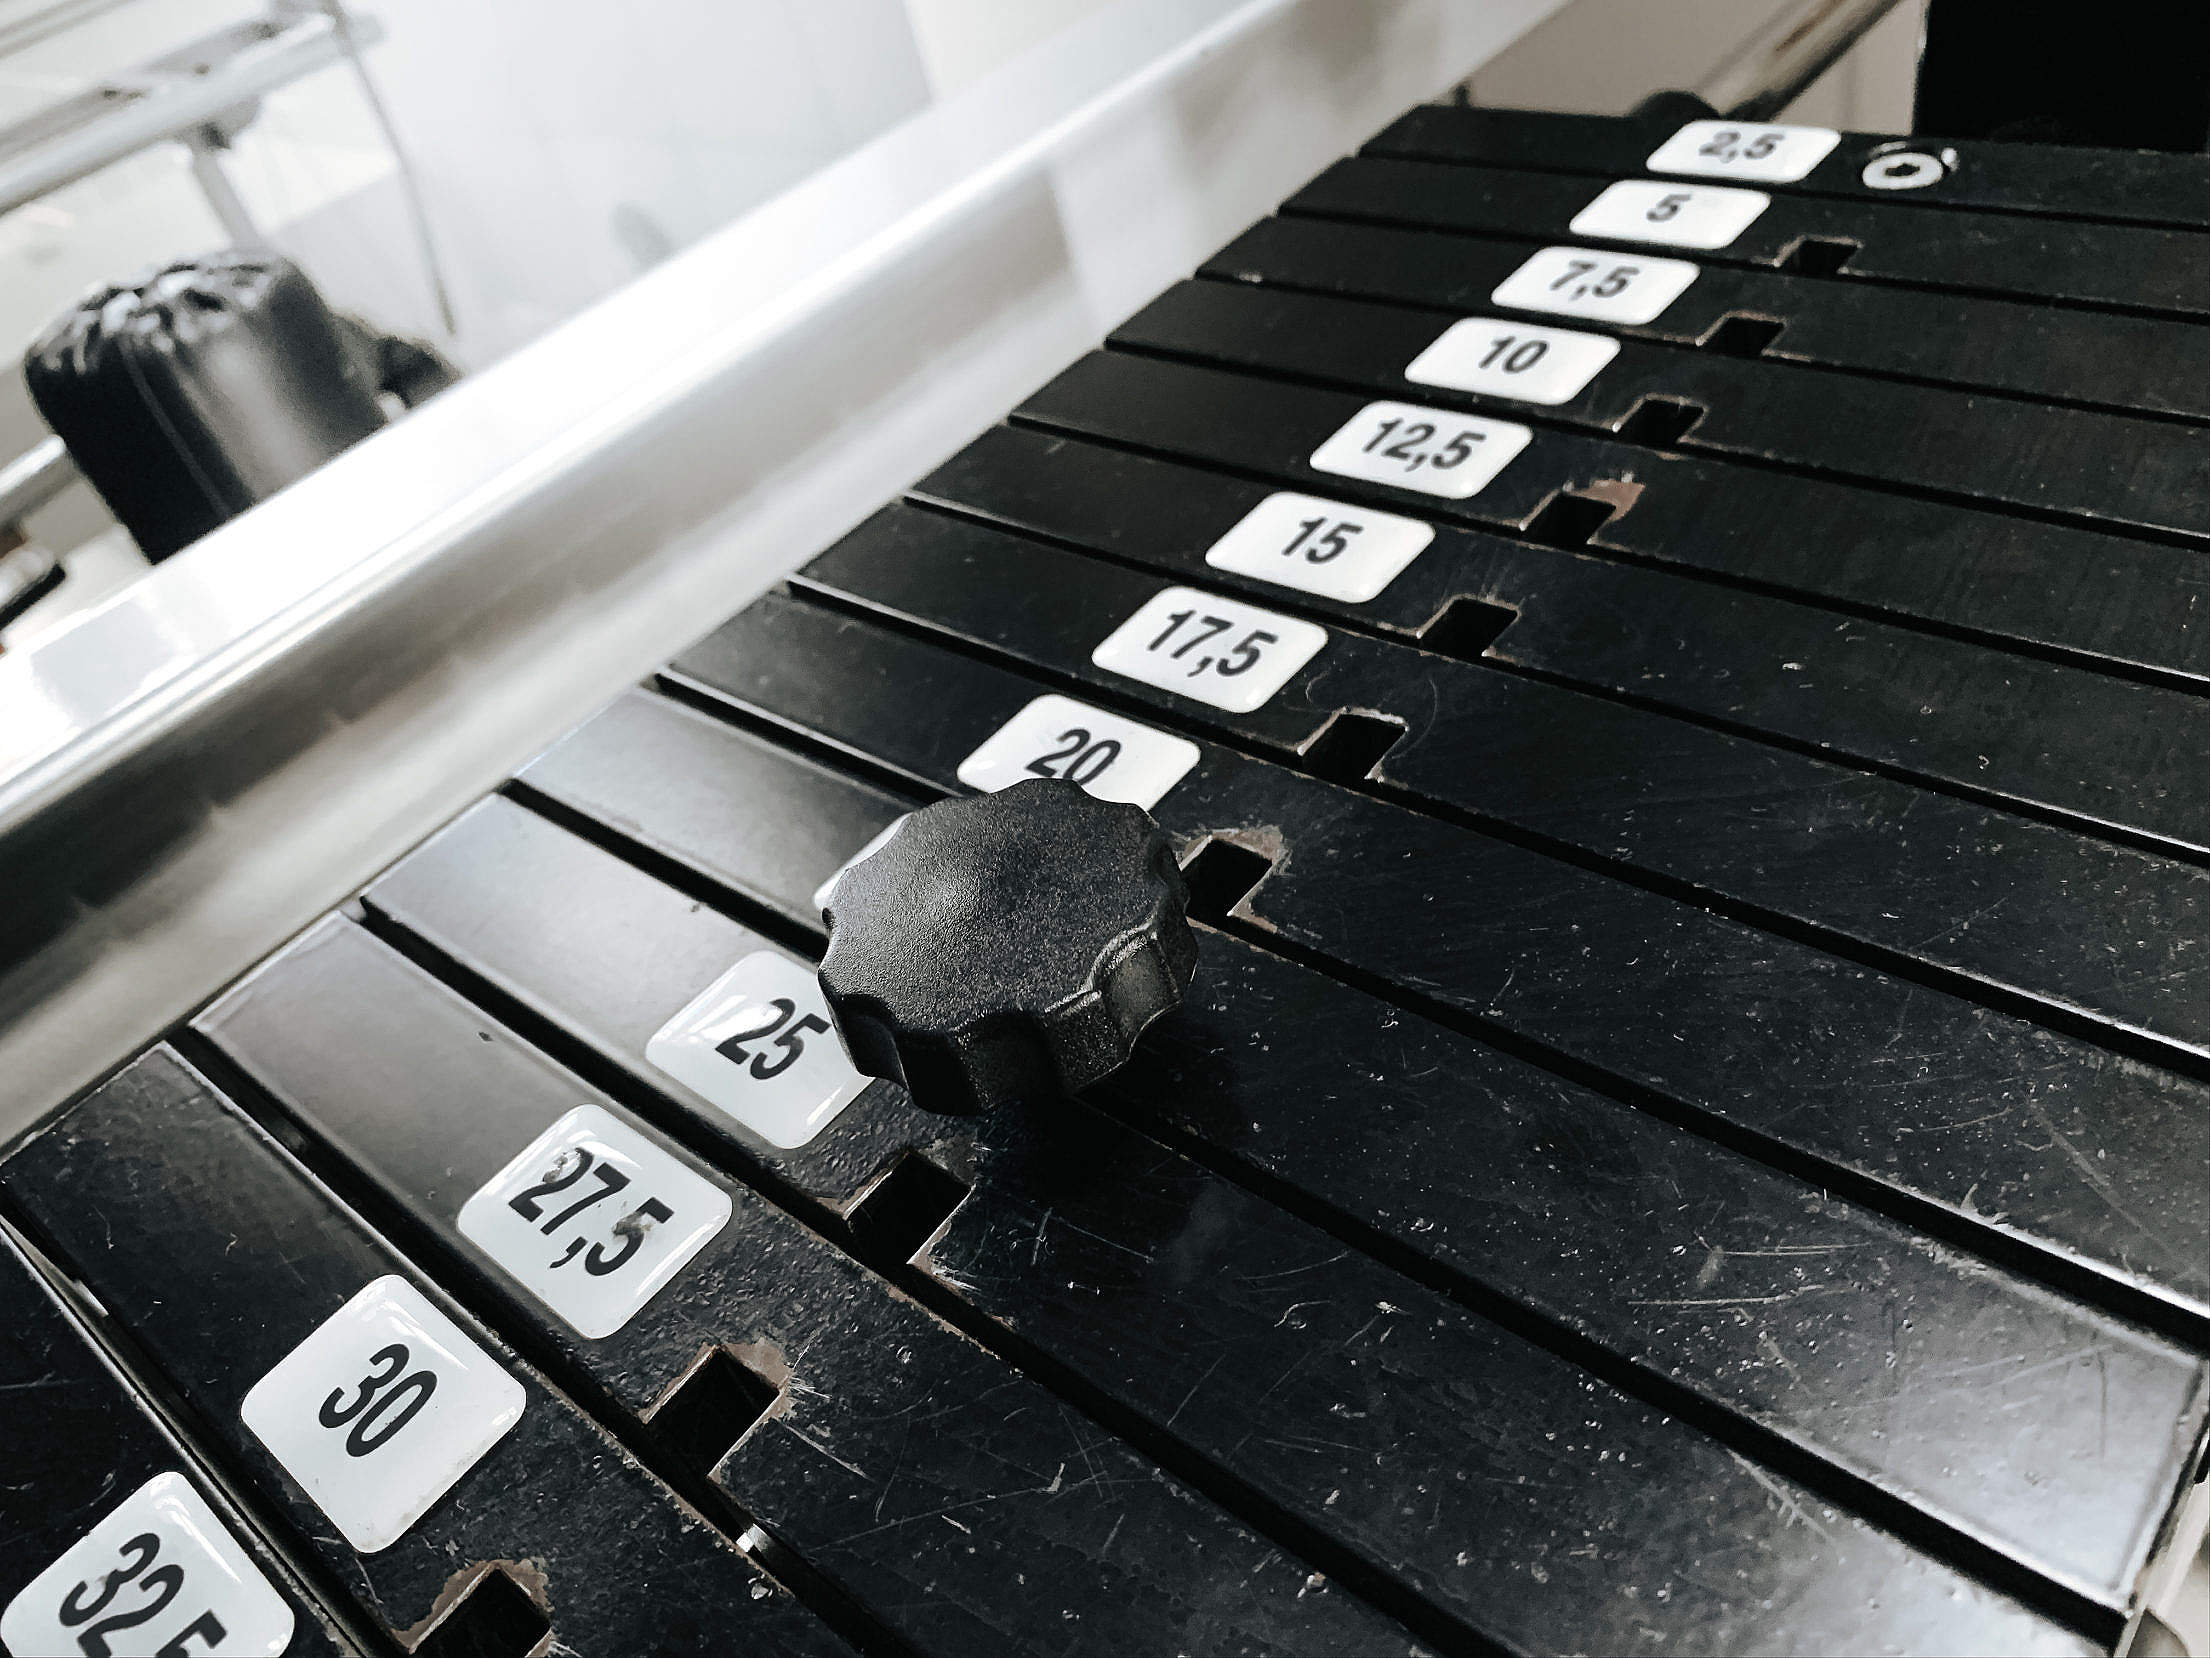 Fitness Gym Machine Weights Free Stock Photo